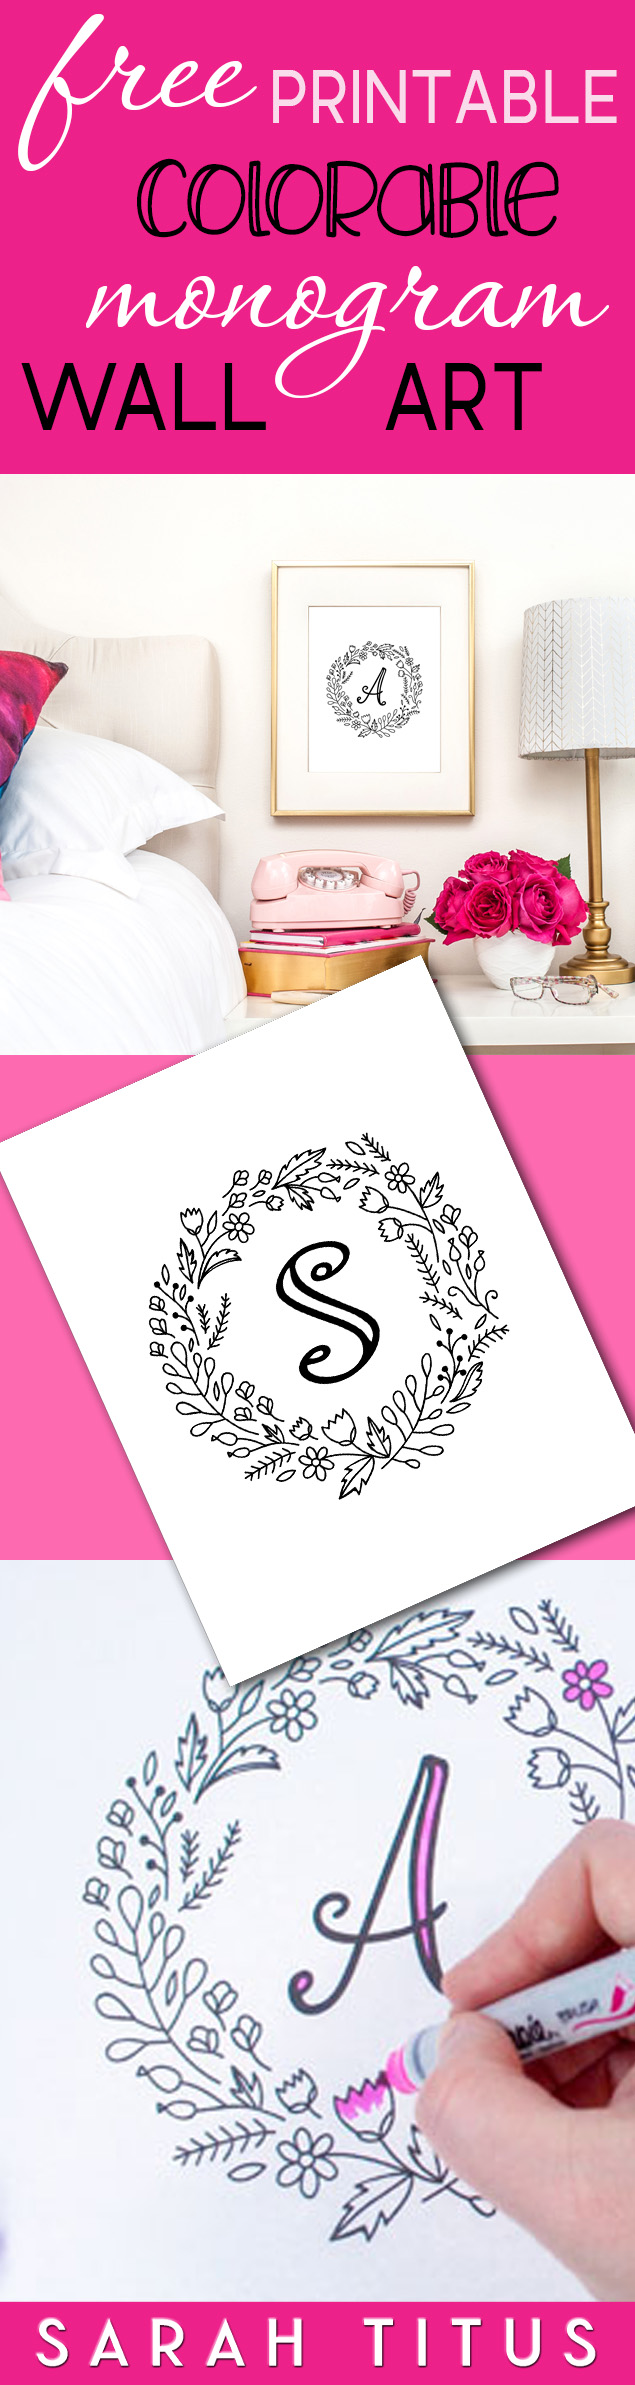 These colorable free printable monogram wall art signs are for you to give them YOUR OWN personal touch! #colorablewallart #monogramwallart #monogram #wallart #freeprintables #freeprintablewallart